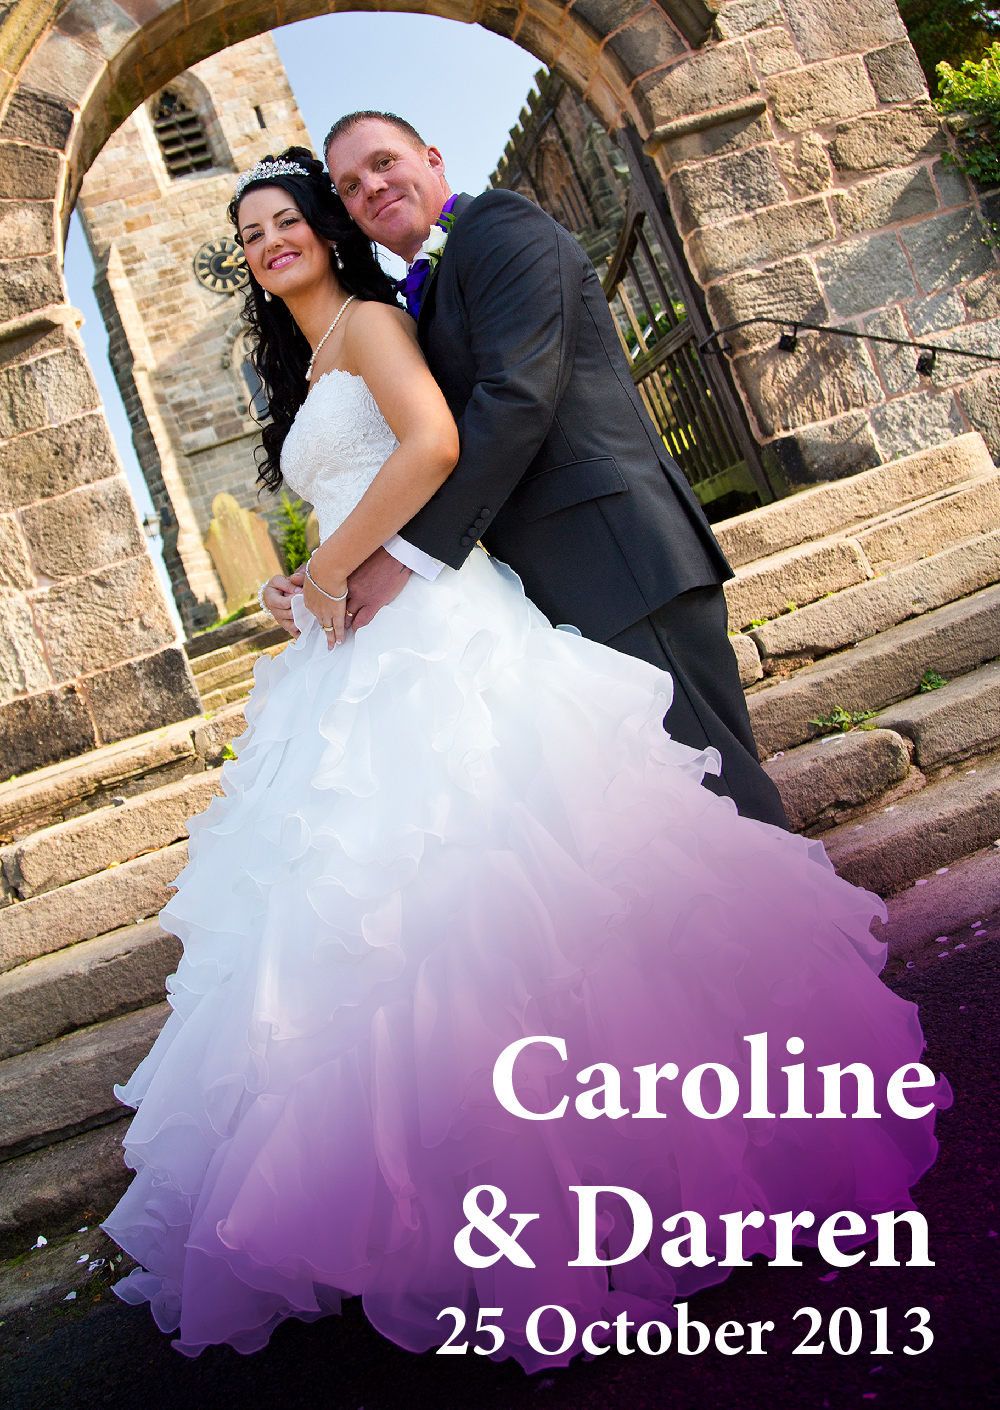 Caroline & Darren's Wedding